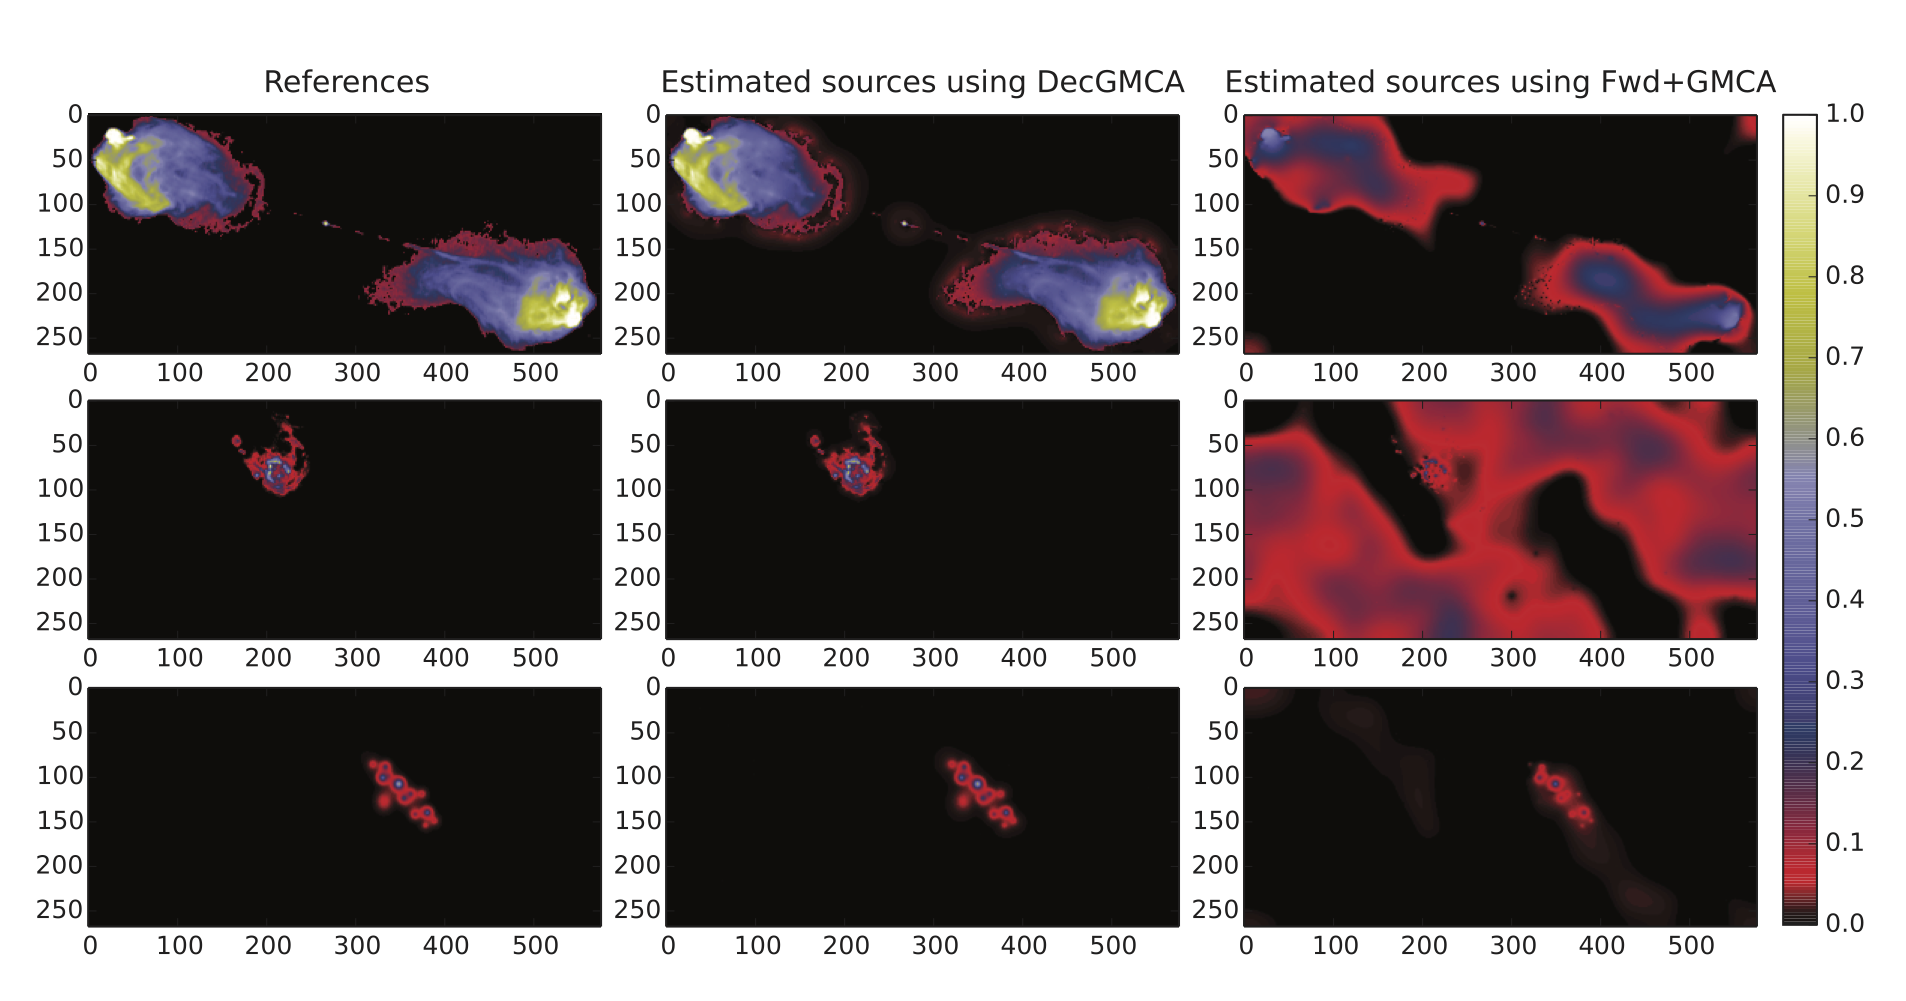 Joint Multichannel Deconvolution and Blind Source Separation